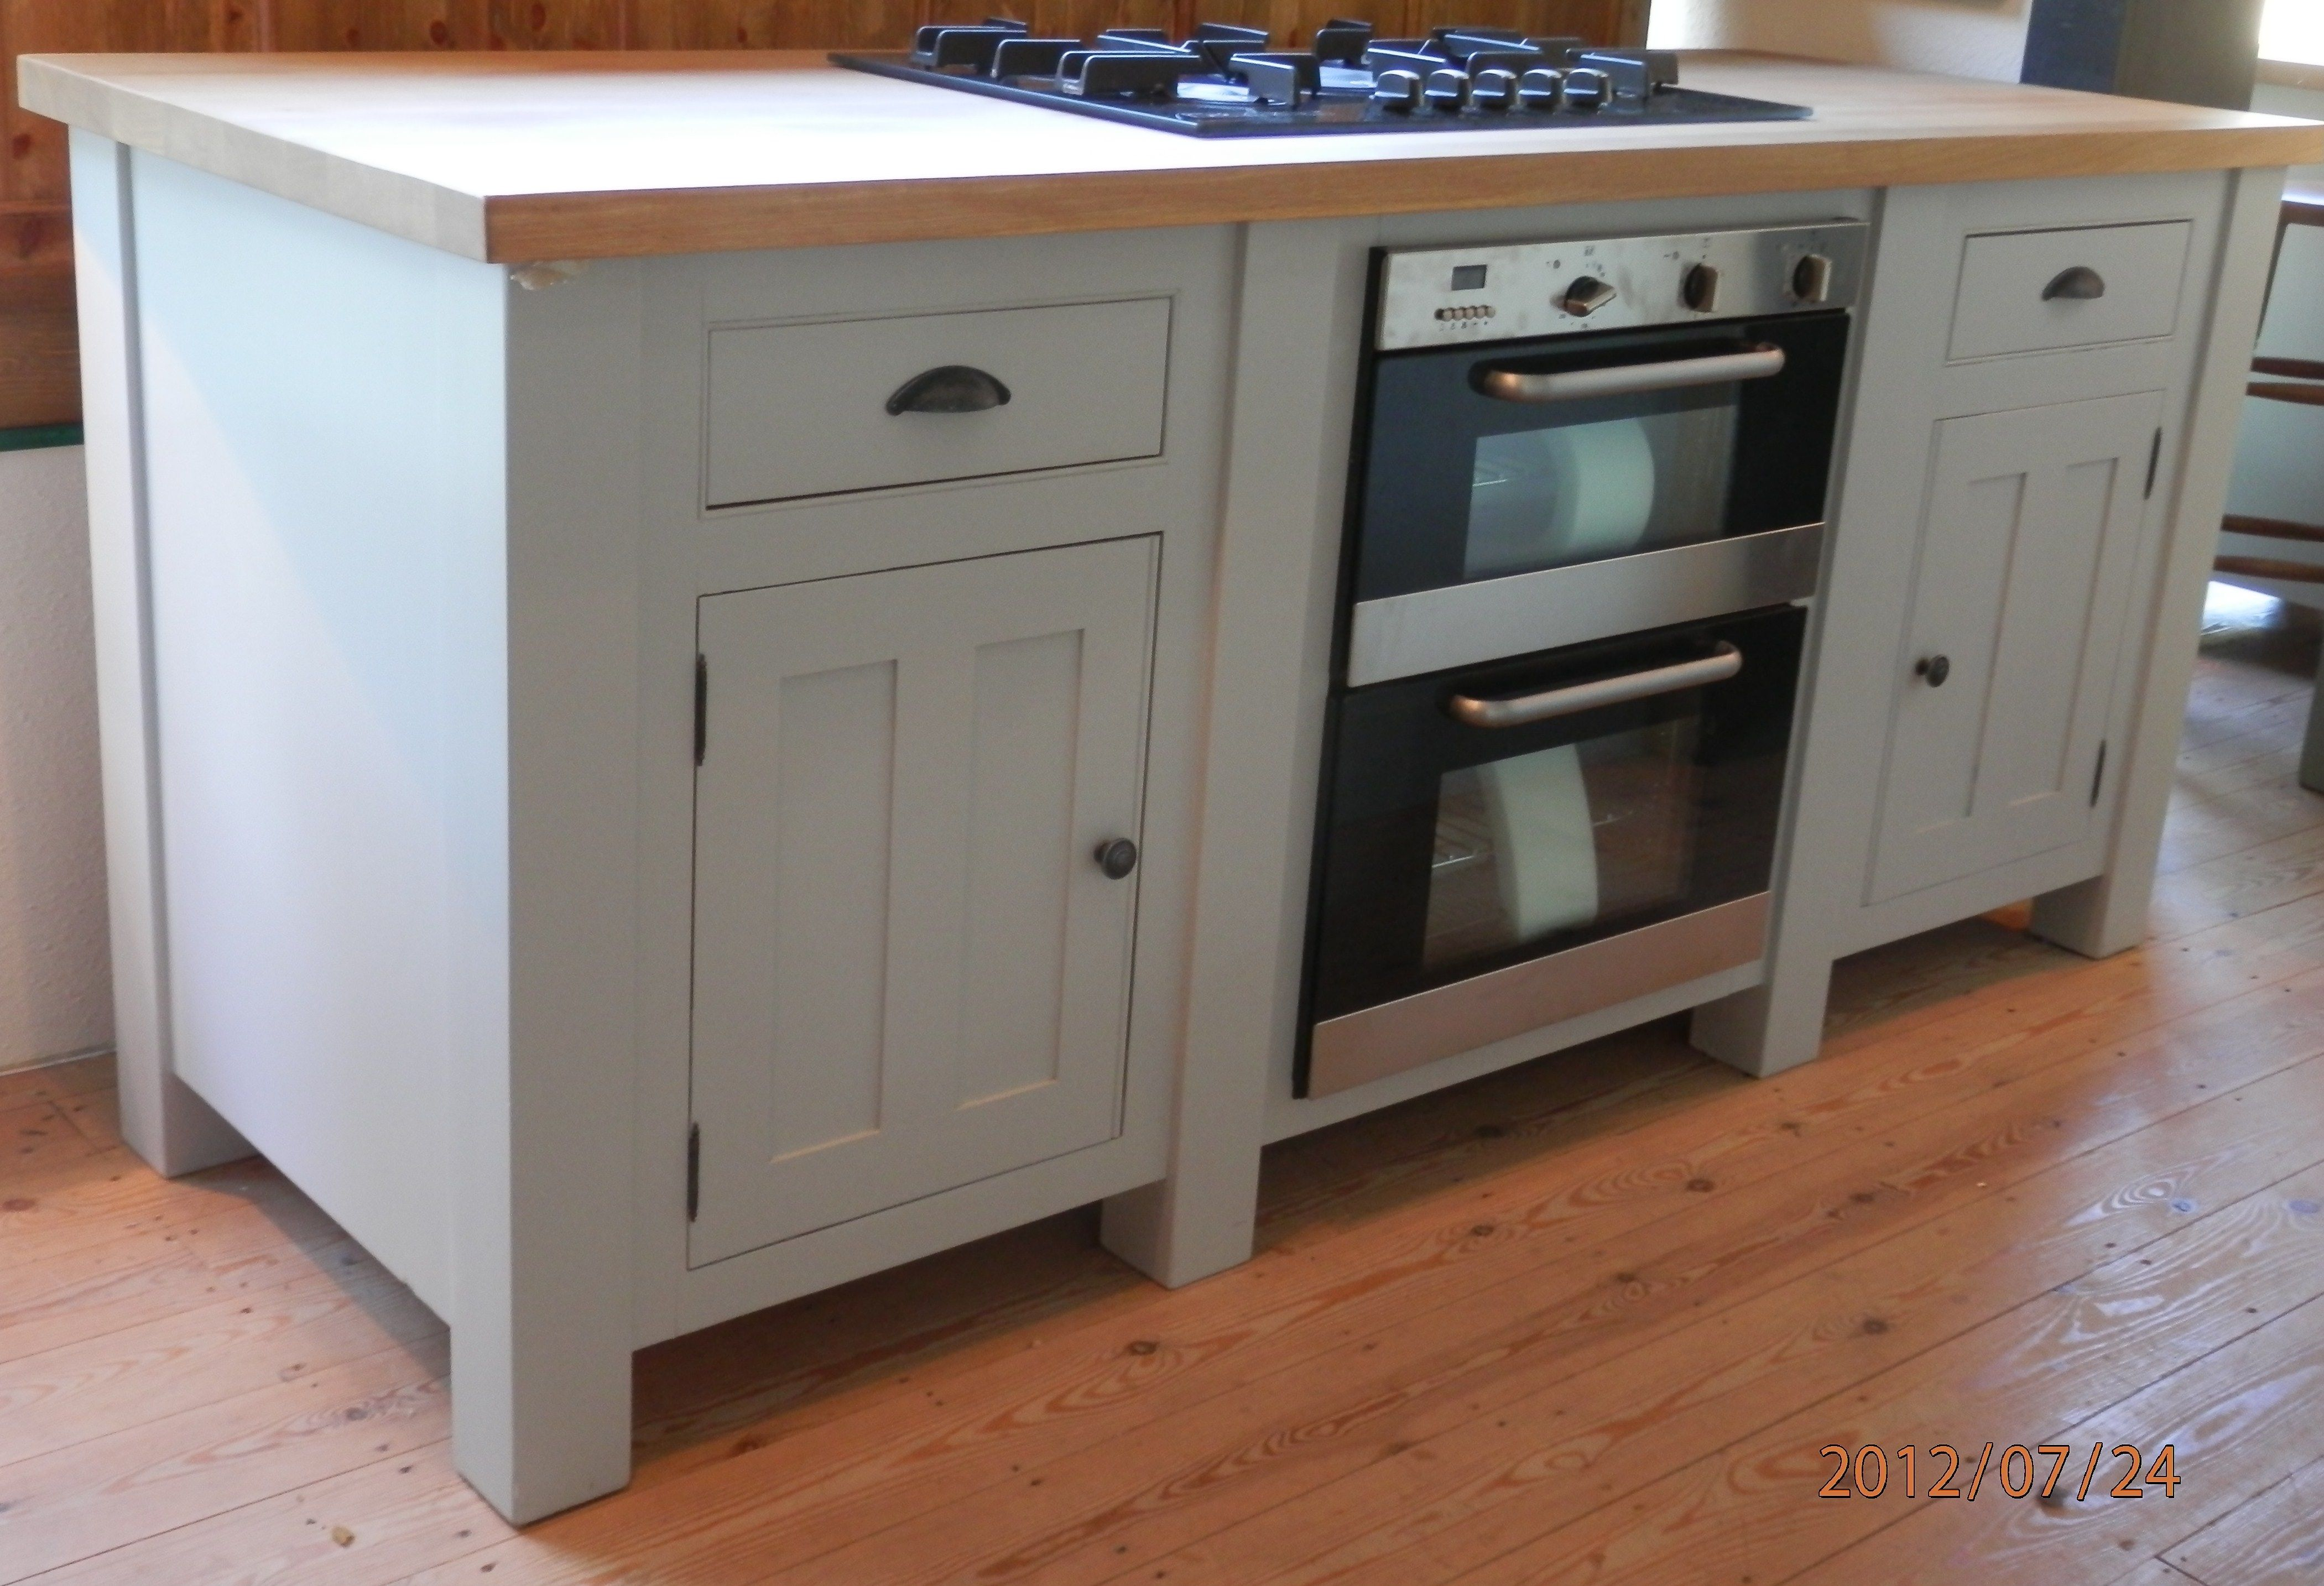 Oven In Island Unit This Freestanding Base Unit Has An Electric Oven And Hob